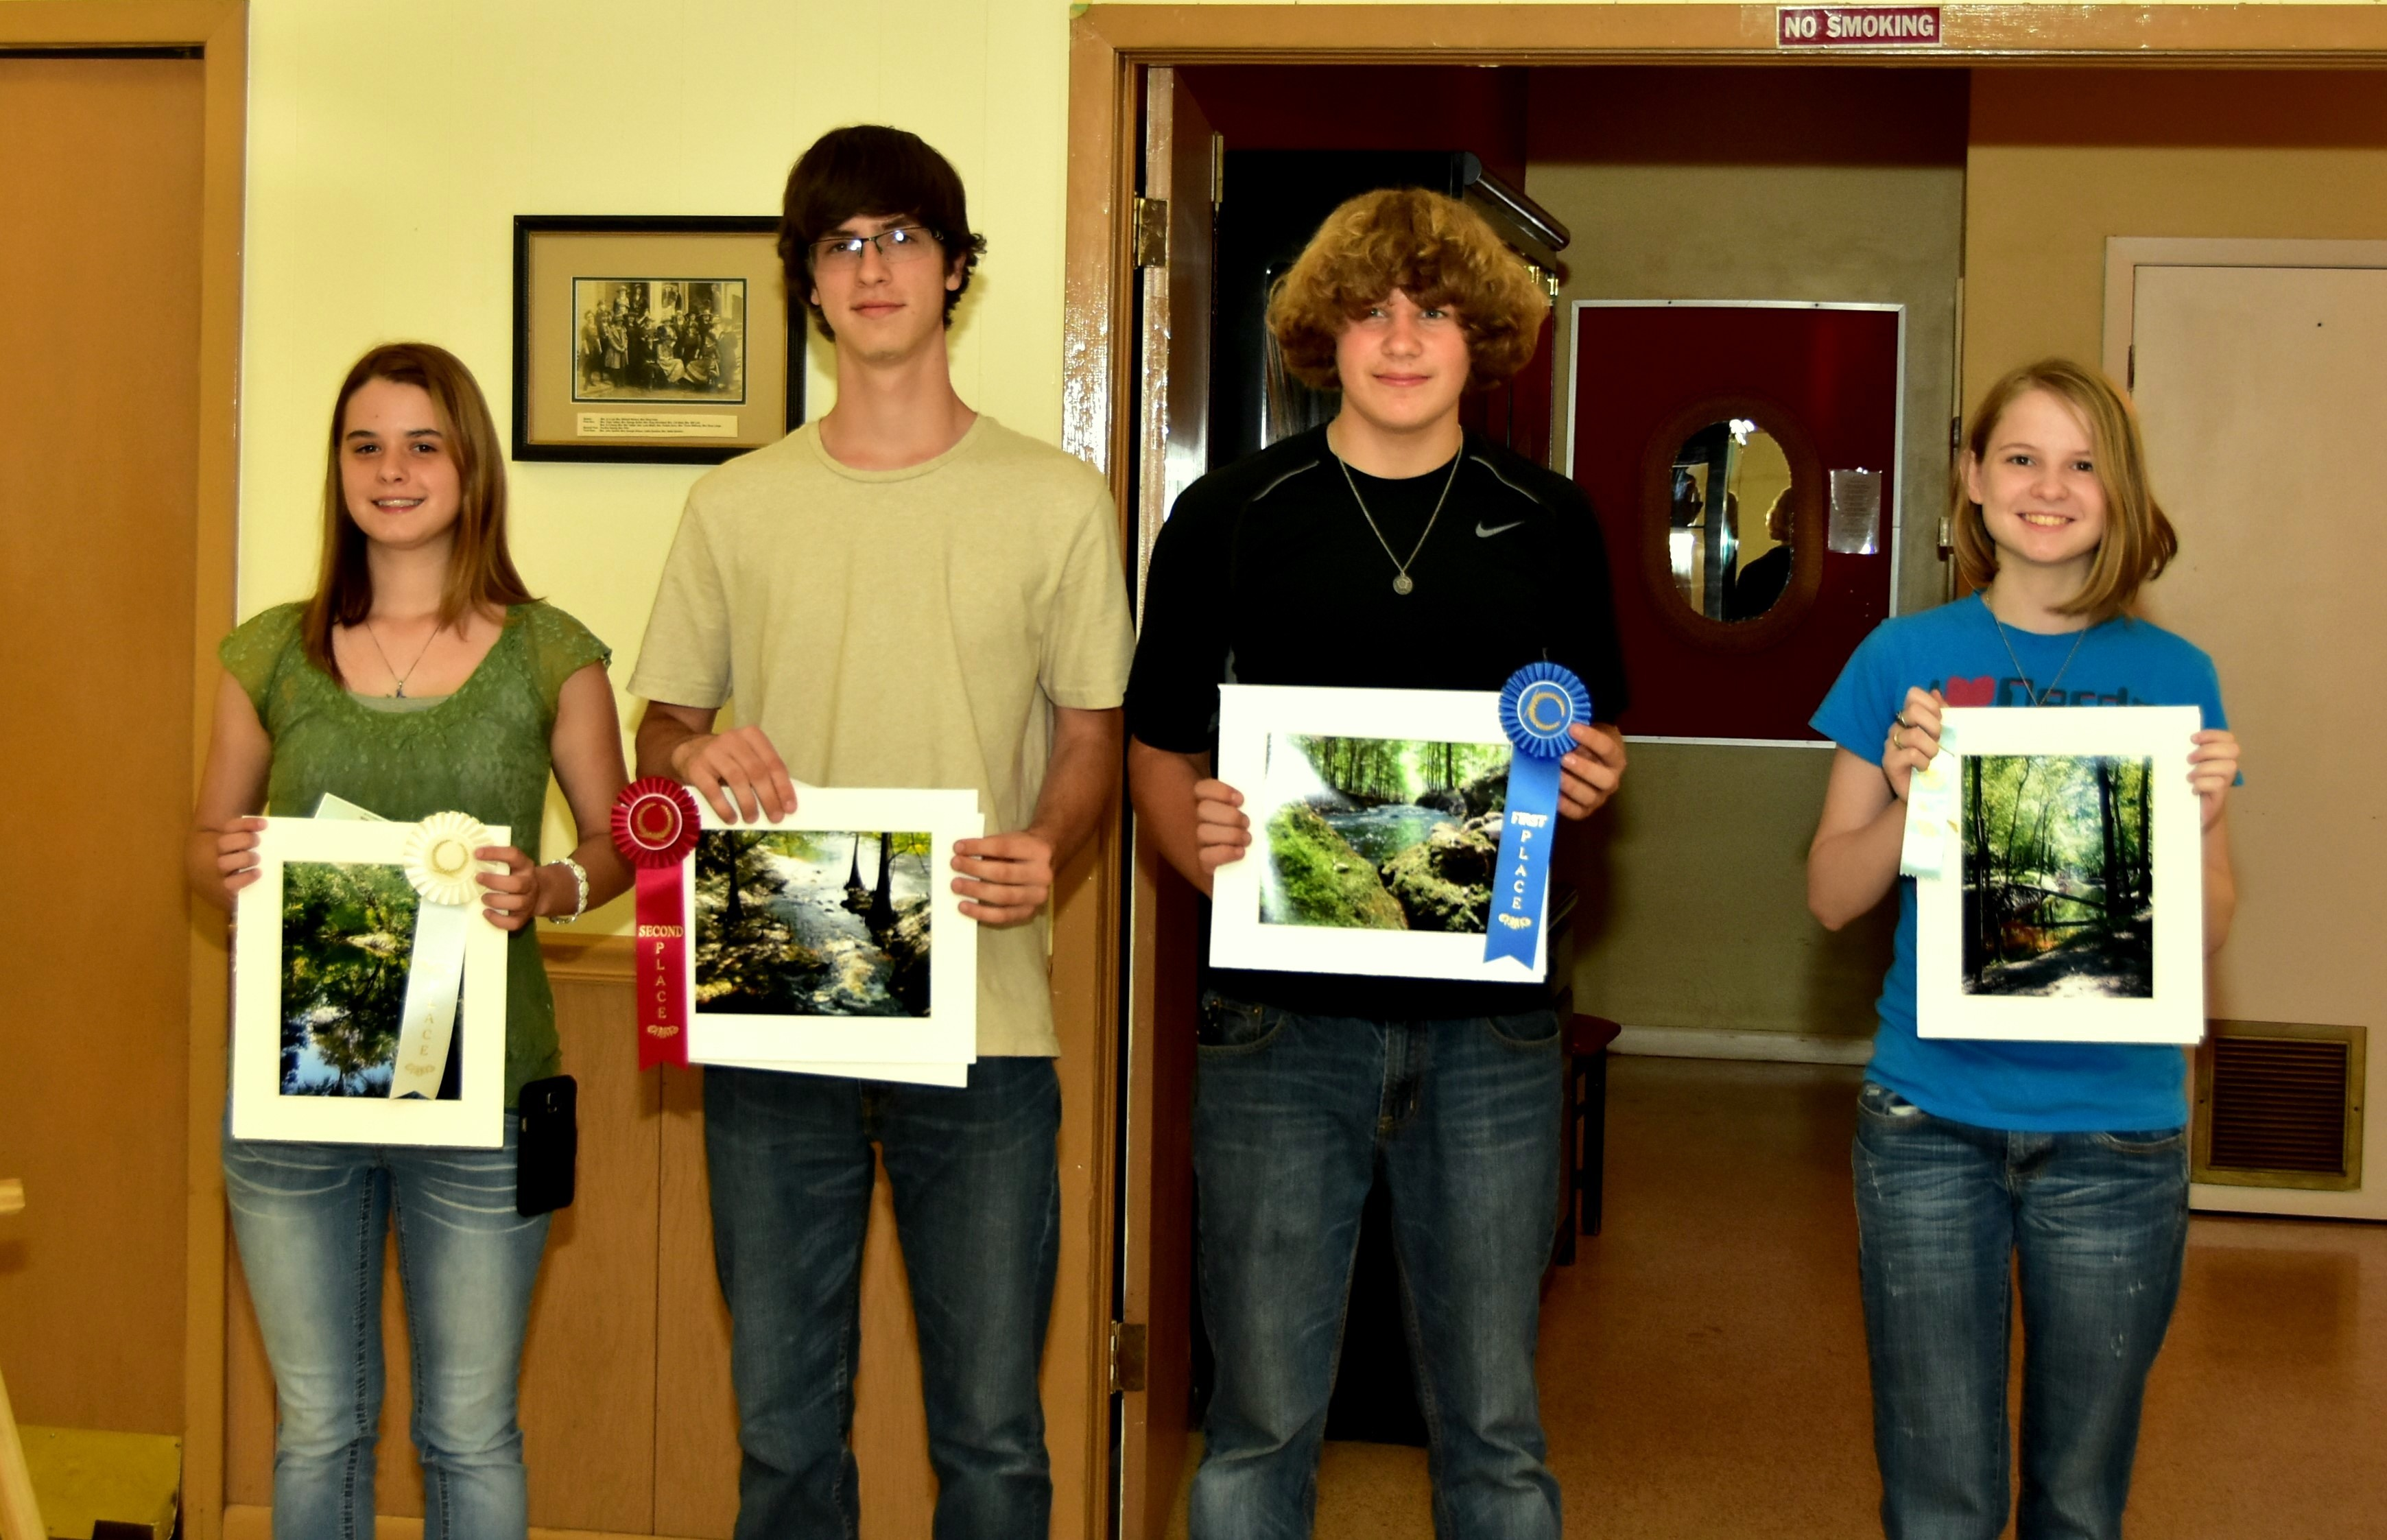 3480x2245 l-r: Jessica Bowman, Third Place, Branford High School; Second Place, Ben Bowman; First Place, Randall Petty; Mallory Stevens, Honorable Mention, Branford High School, in Winning Students, by Rob Wolfe, 23 May 2016